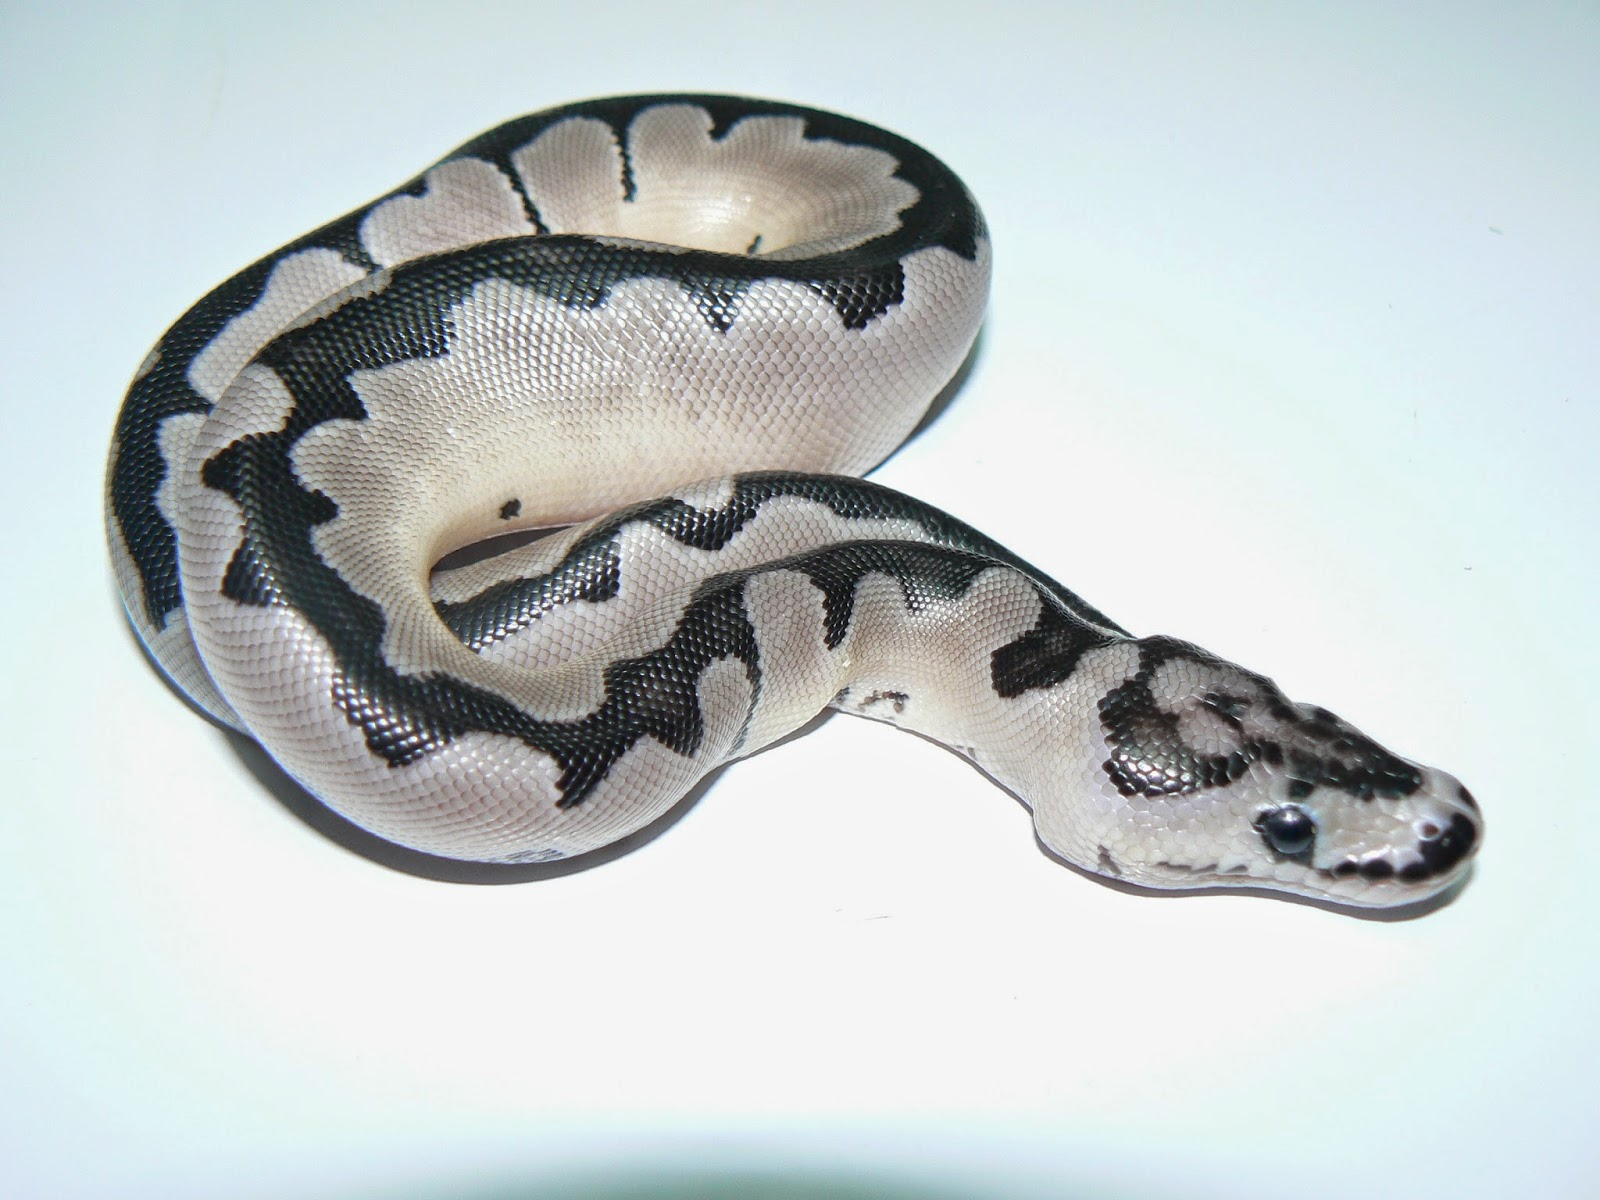 Heather's Herps: It has arrived! TSK Axanthic Clown